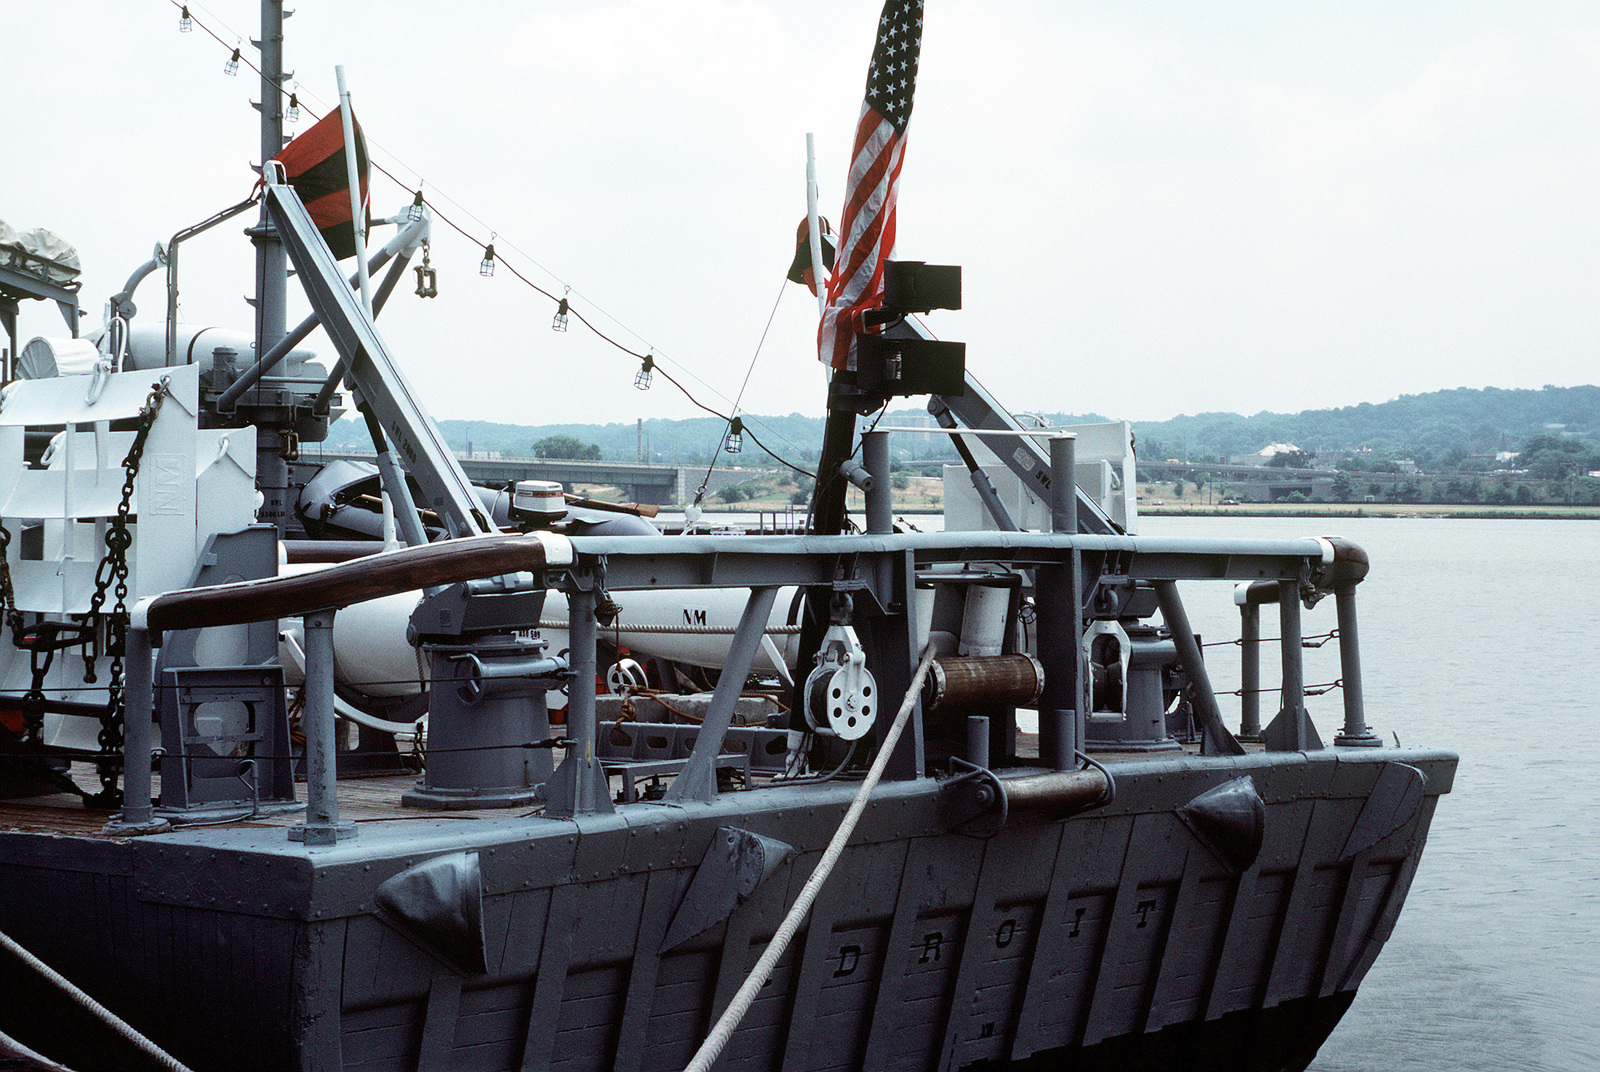 A view of the derrick arms used to support the minesweeping